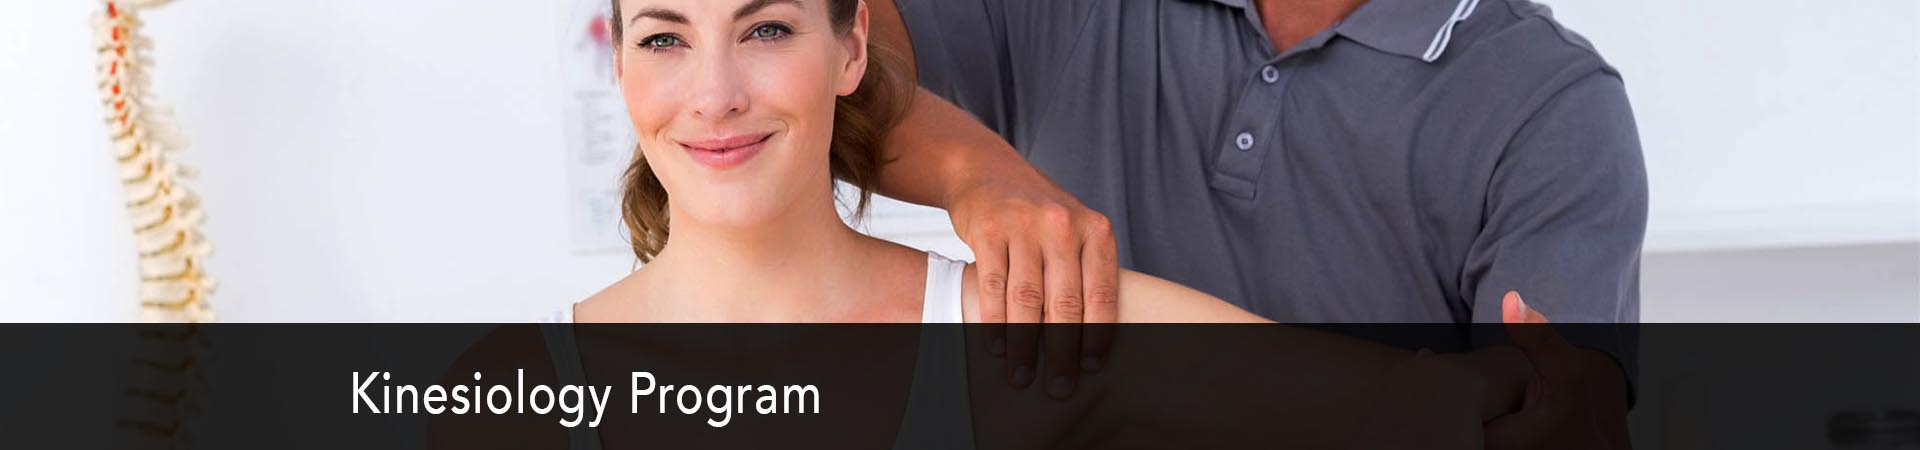 Explore the Kinesiology Program at NC